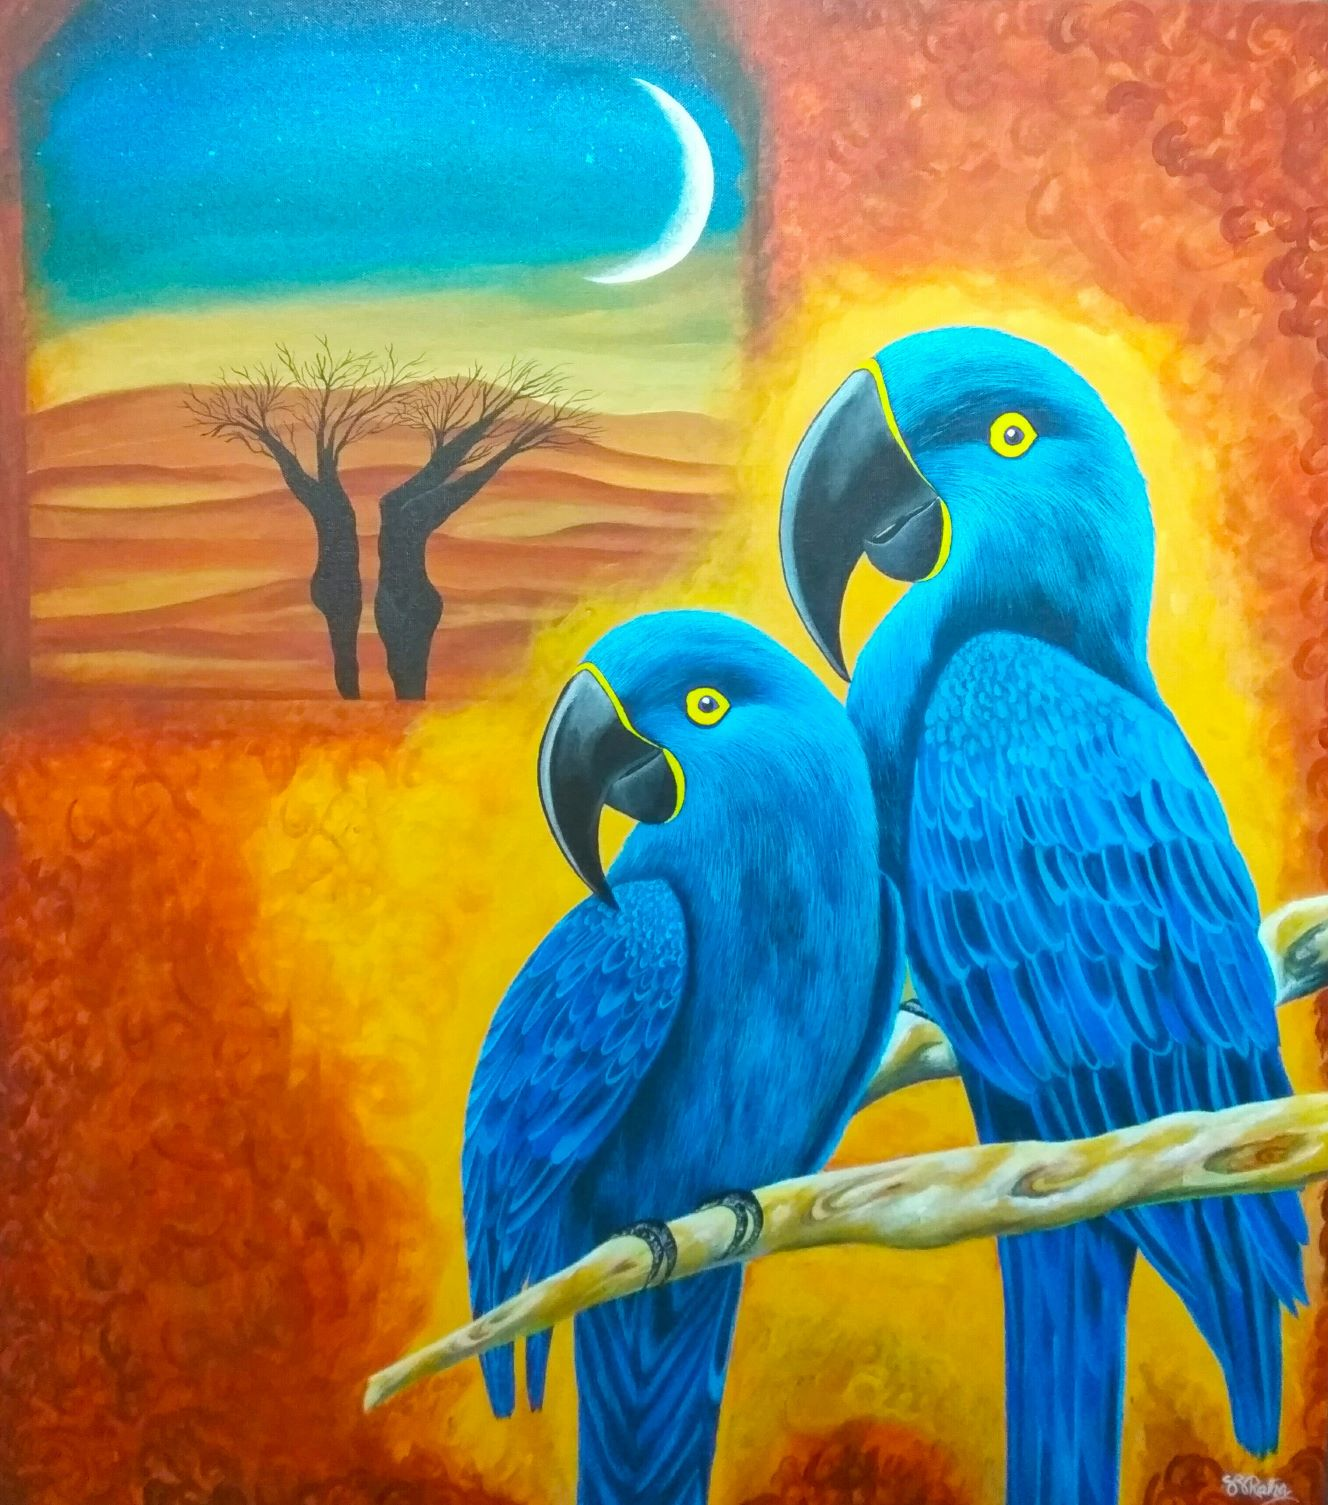 1601473985_eternal-love.jpg